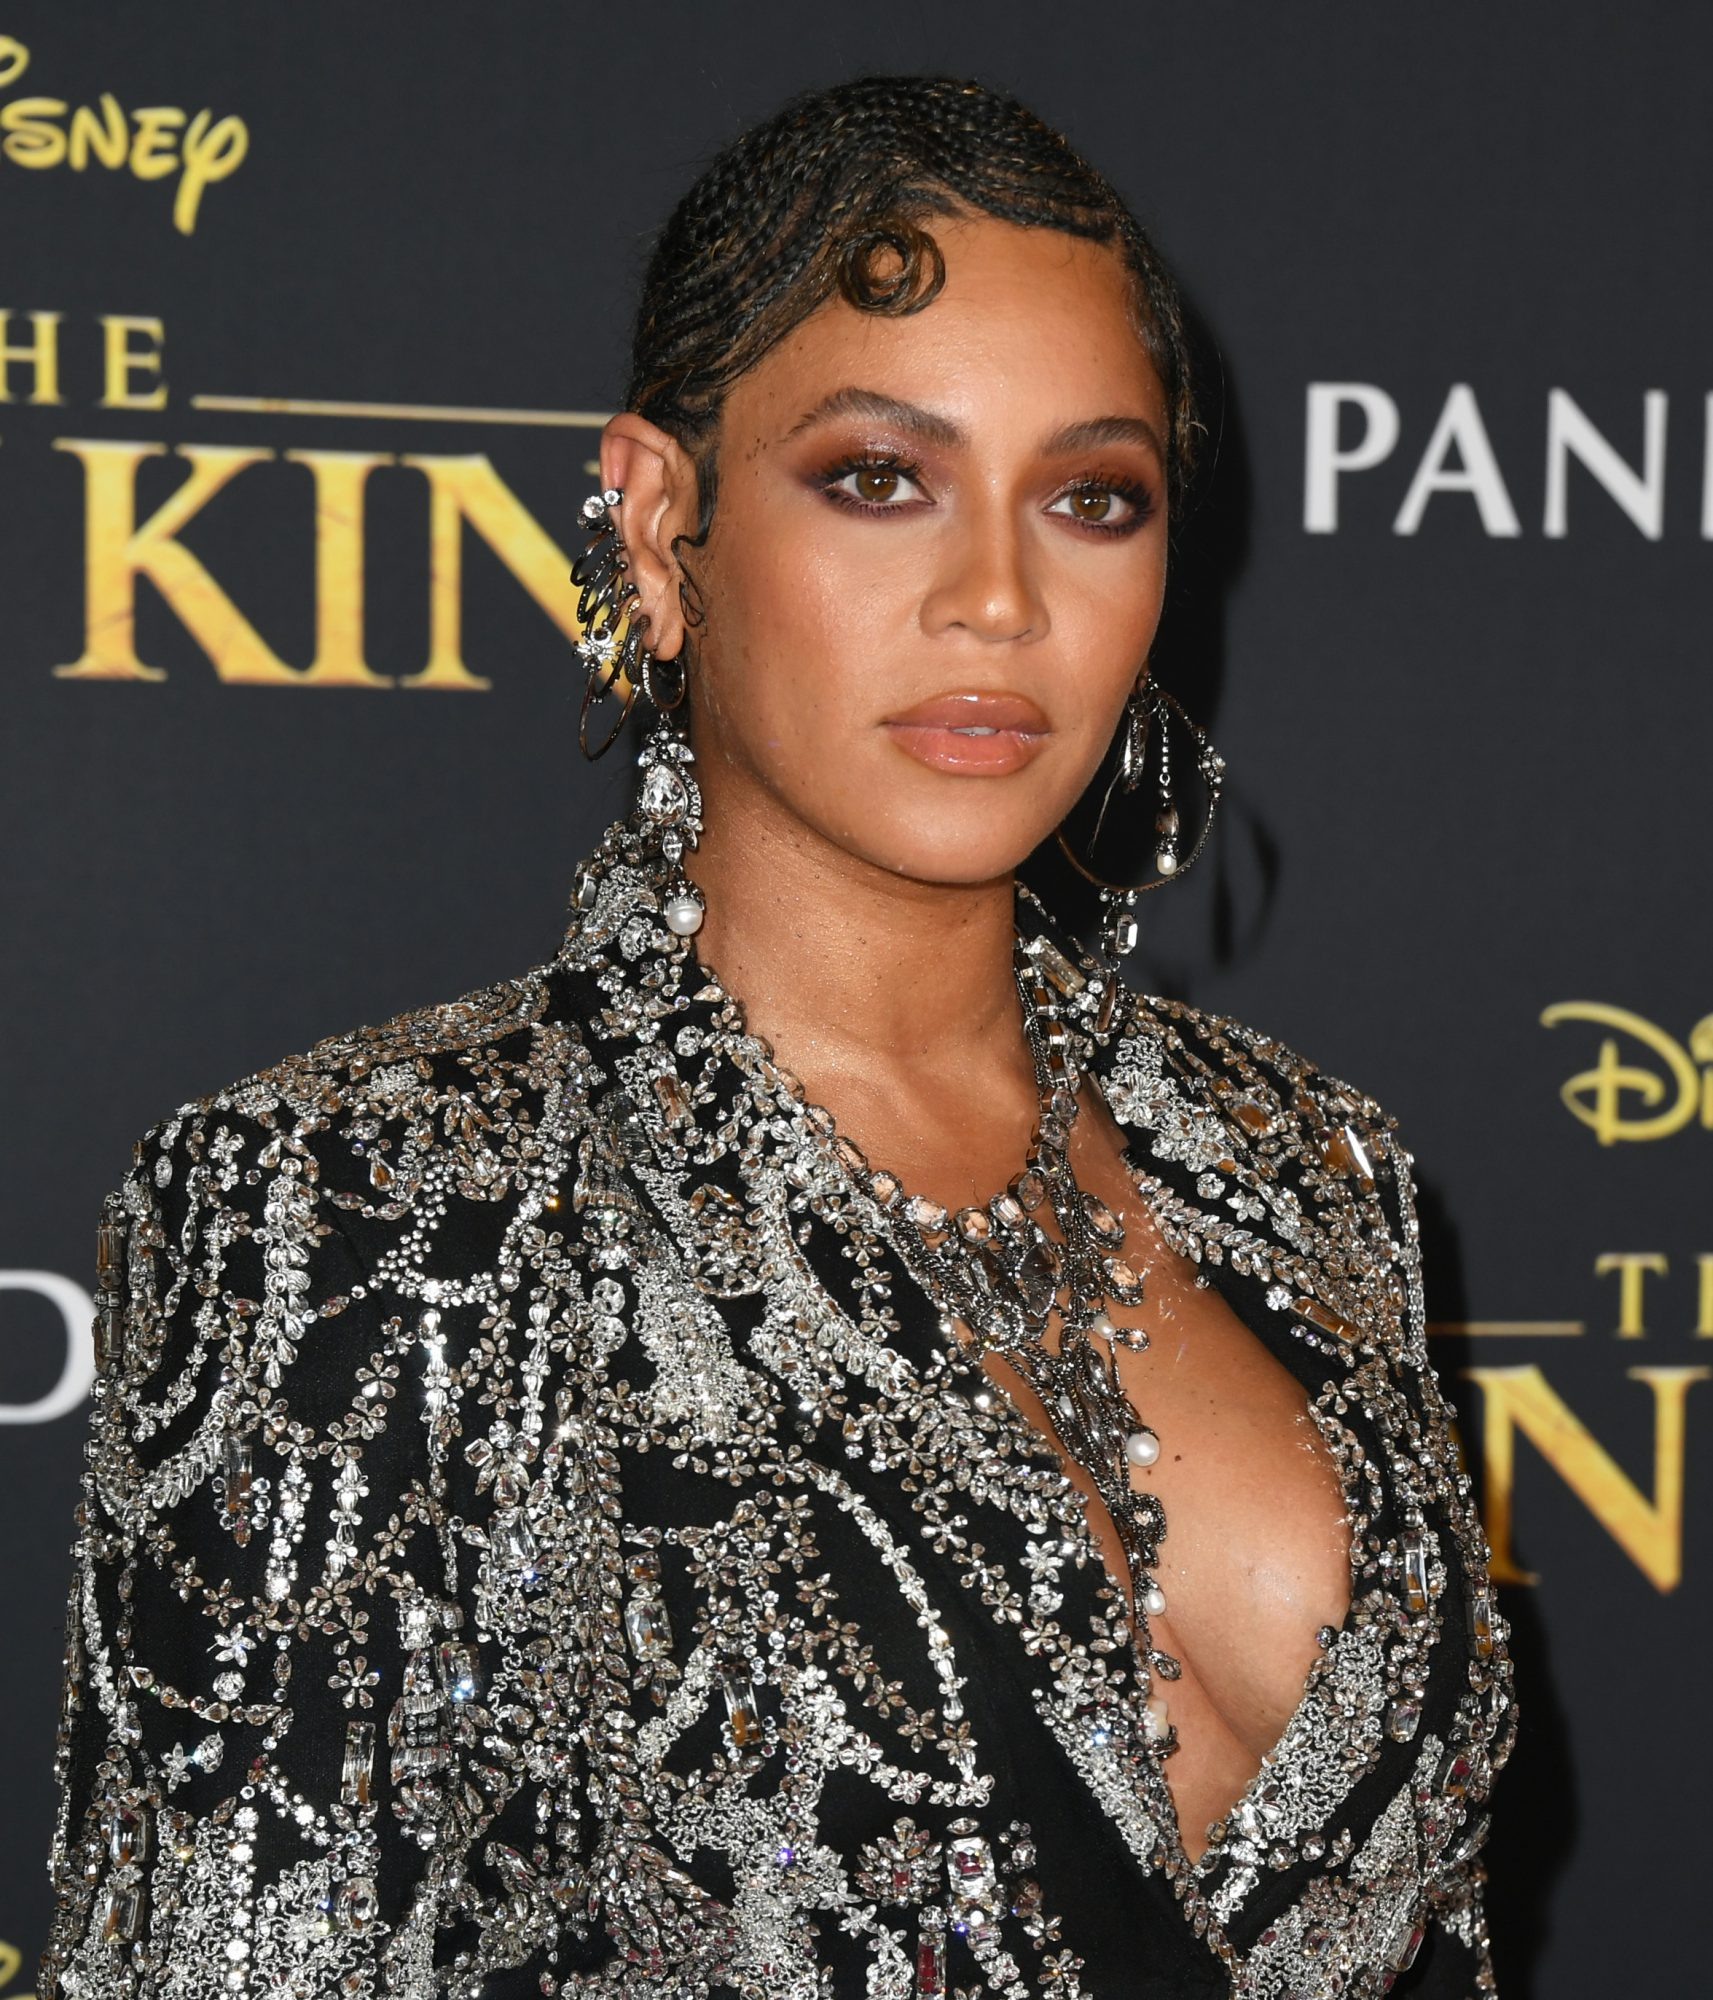 Beyoncé and Blue Ivy Shut Down <em>The Lion King</em> Premiere in Mother-Daughter Matching Looks